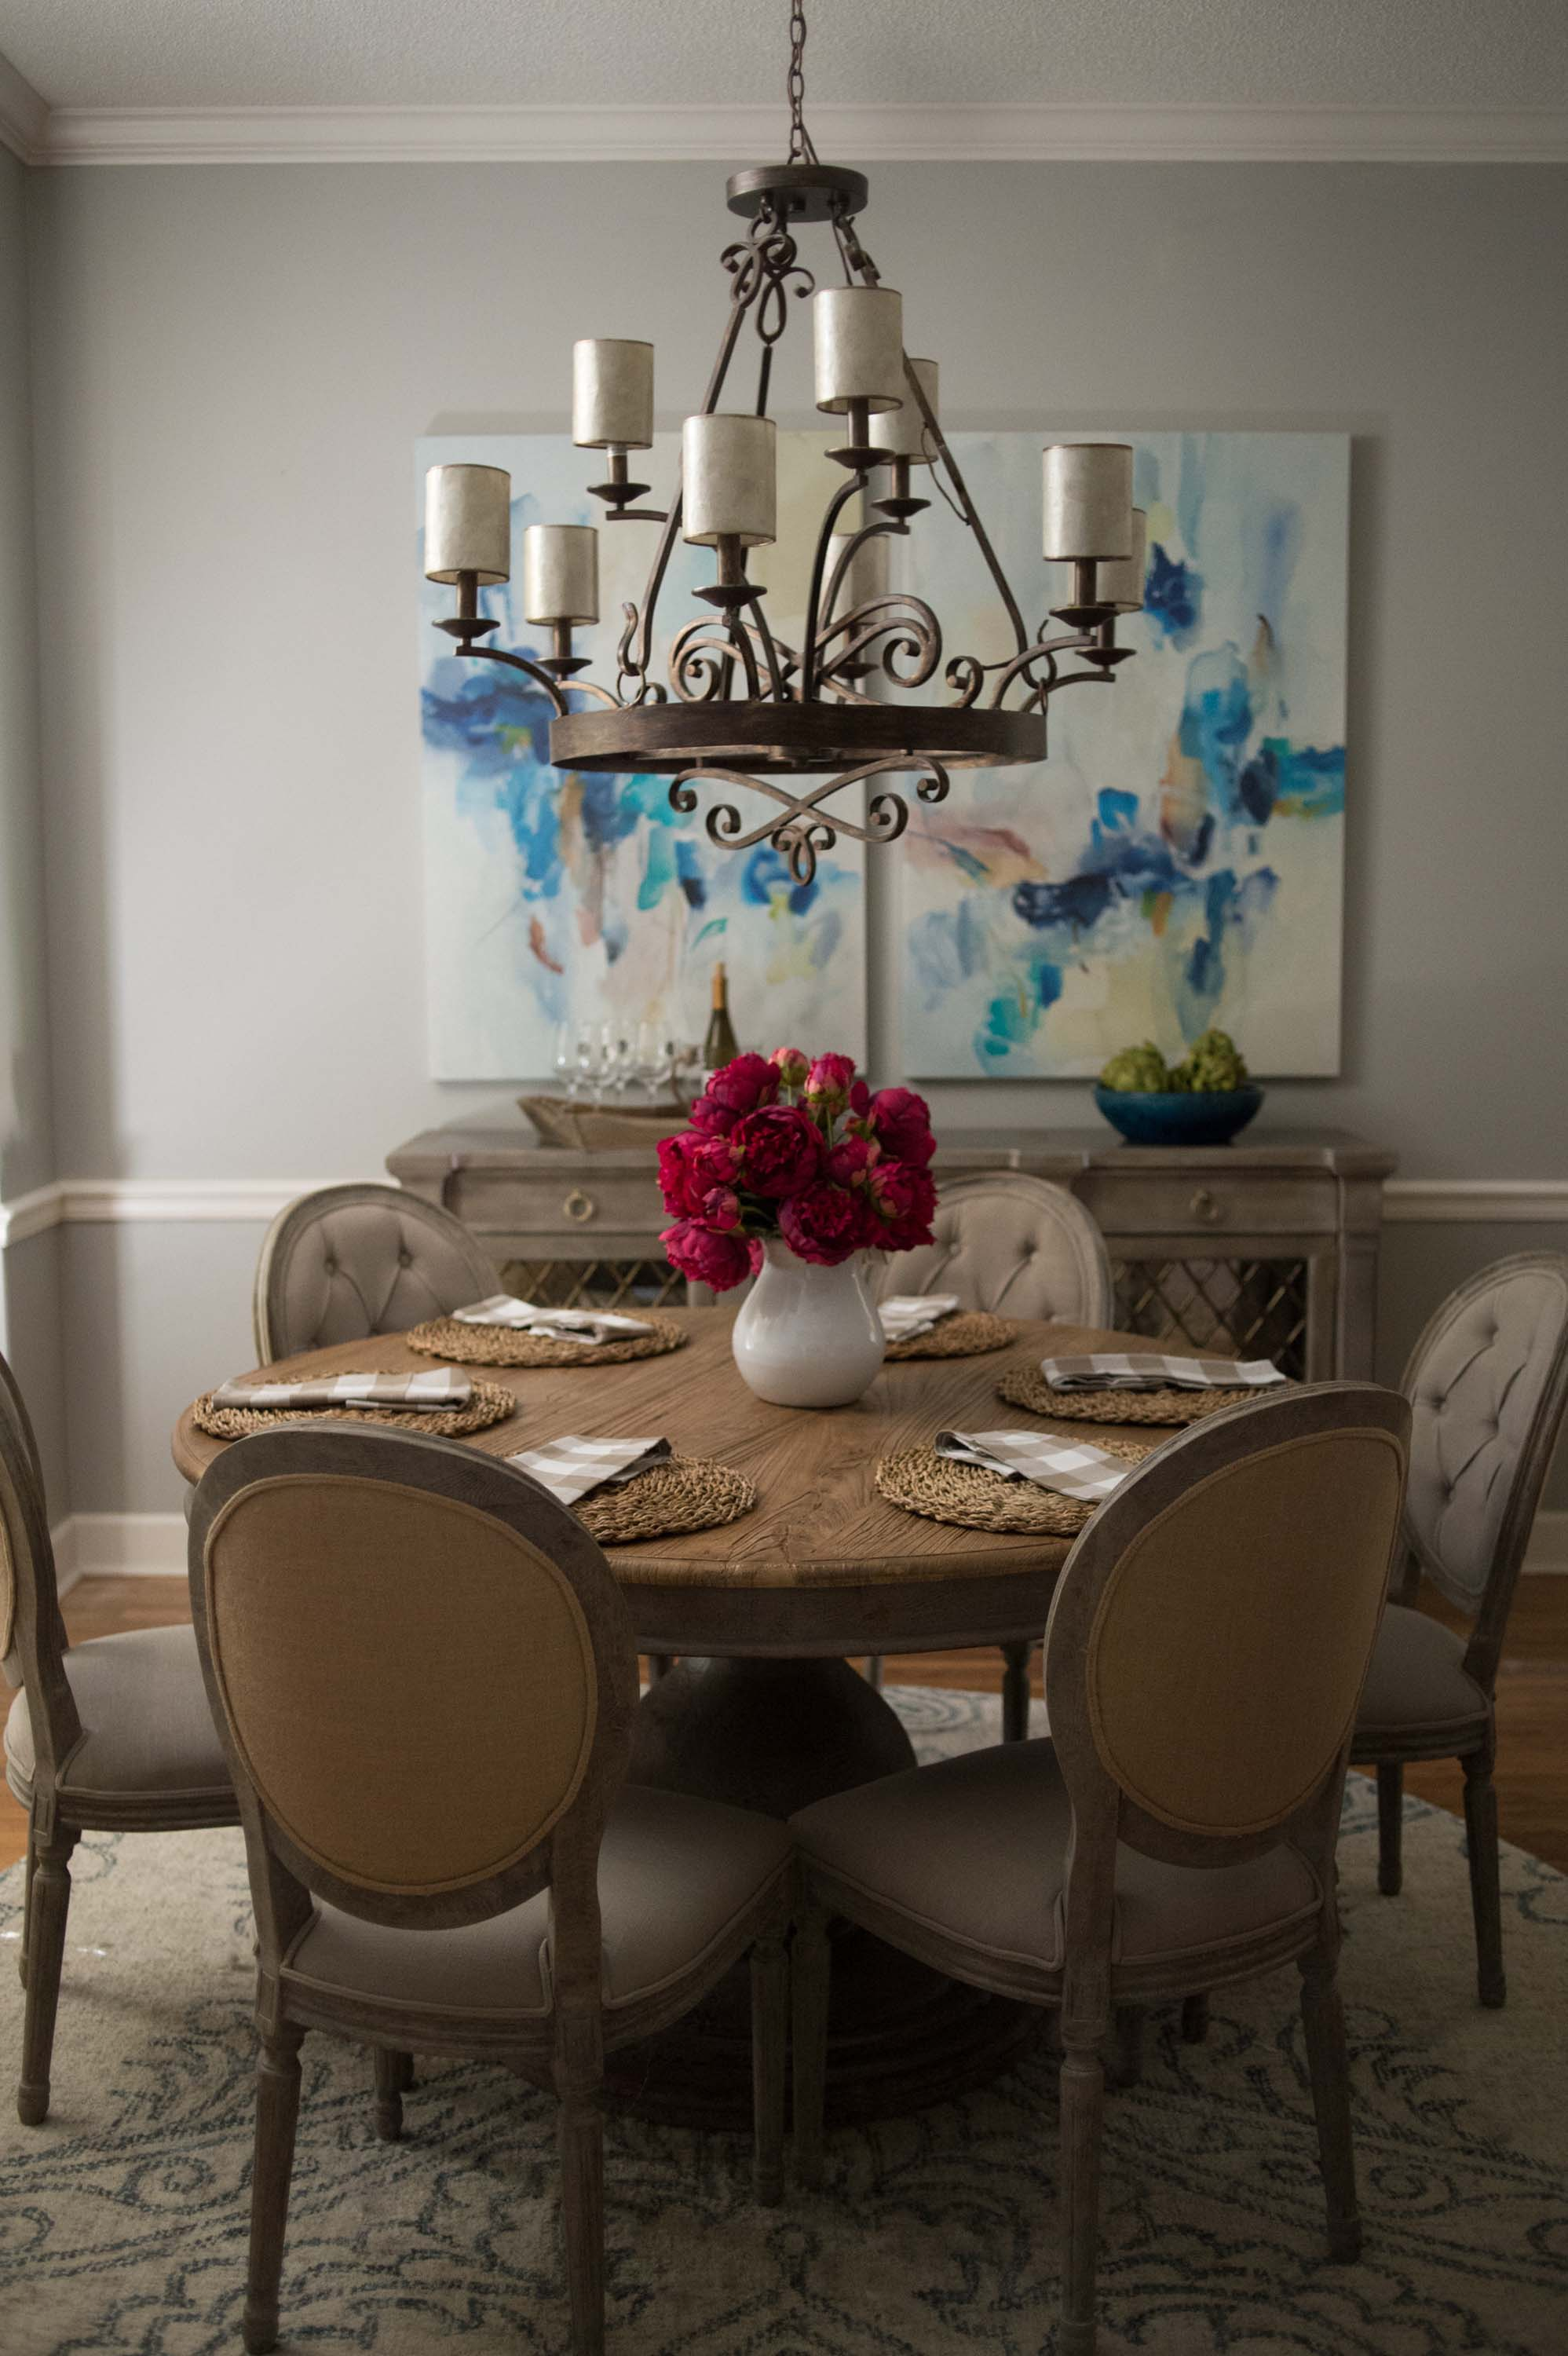 Dining Room Table with Light Fixture, Artwork, Chairs & Centerpiece